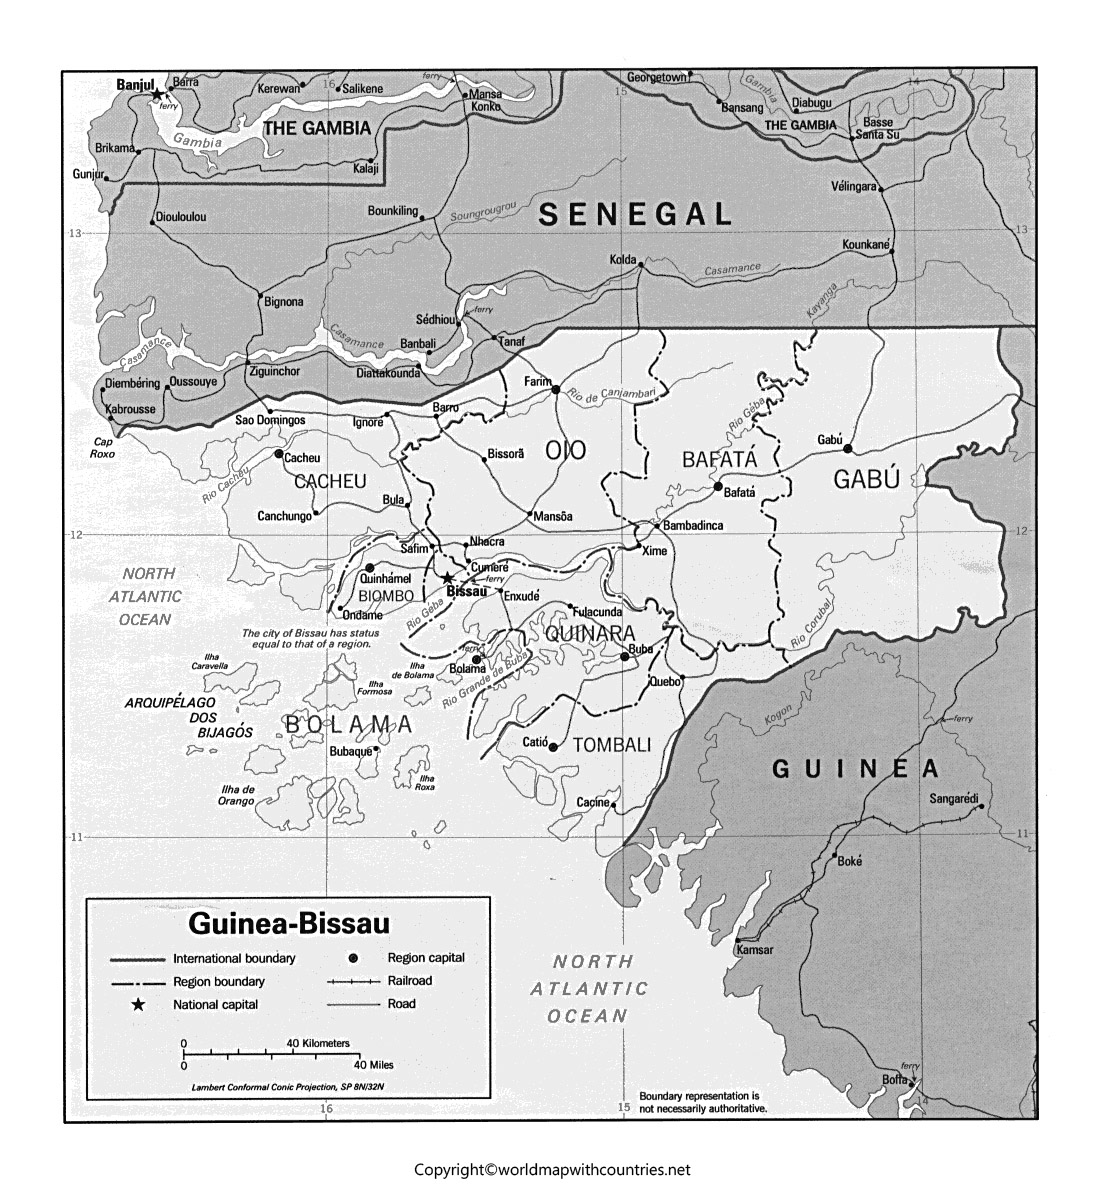 Blank Map of Guinea-Bissau